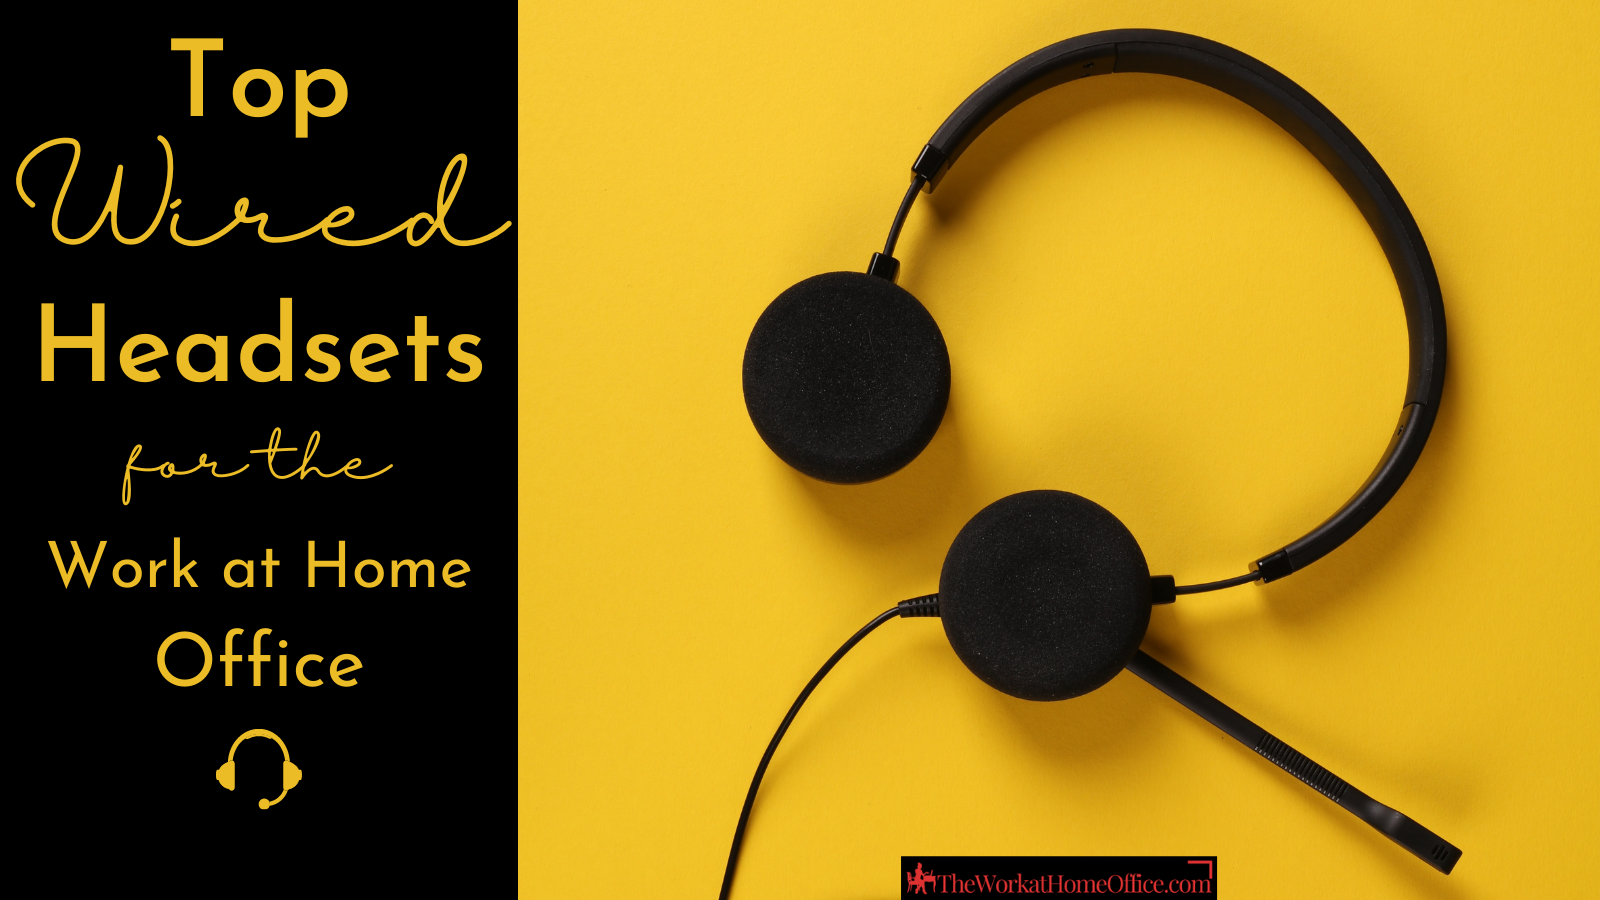 the-work-at-home-office-post-top-product-wired-headsets